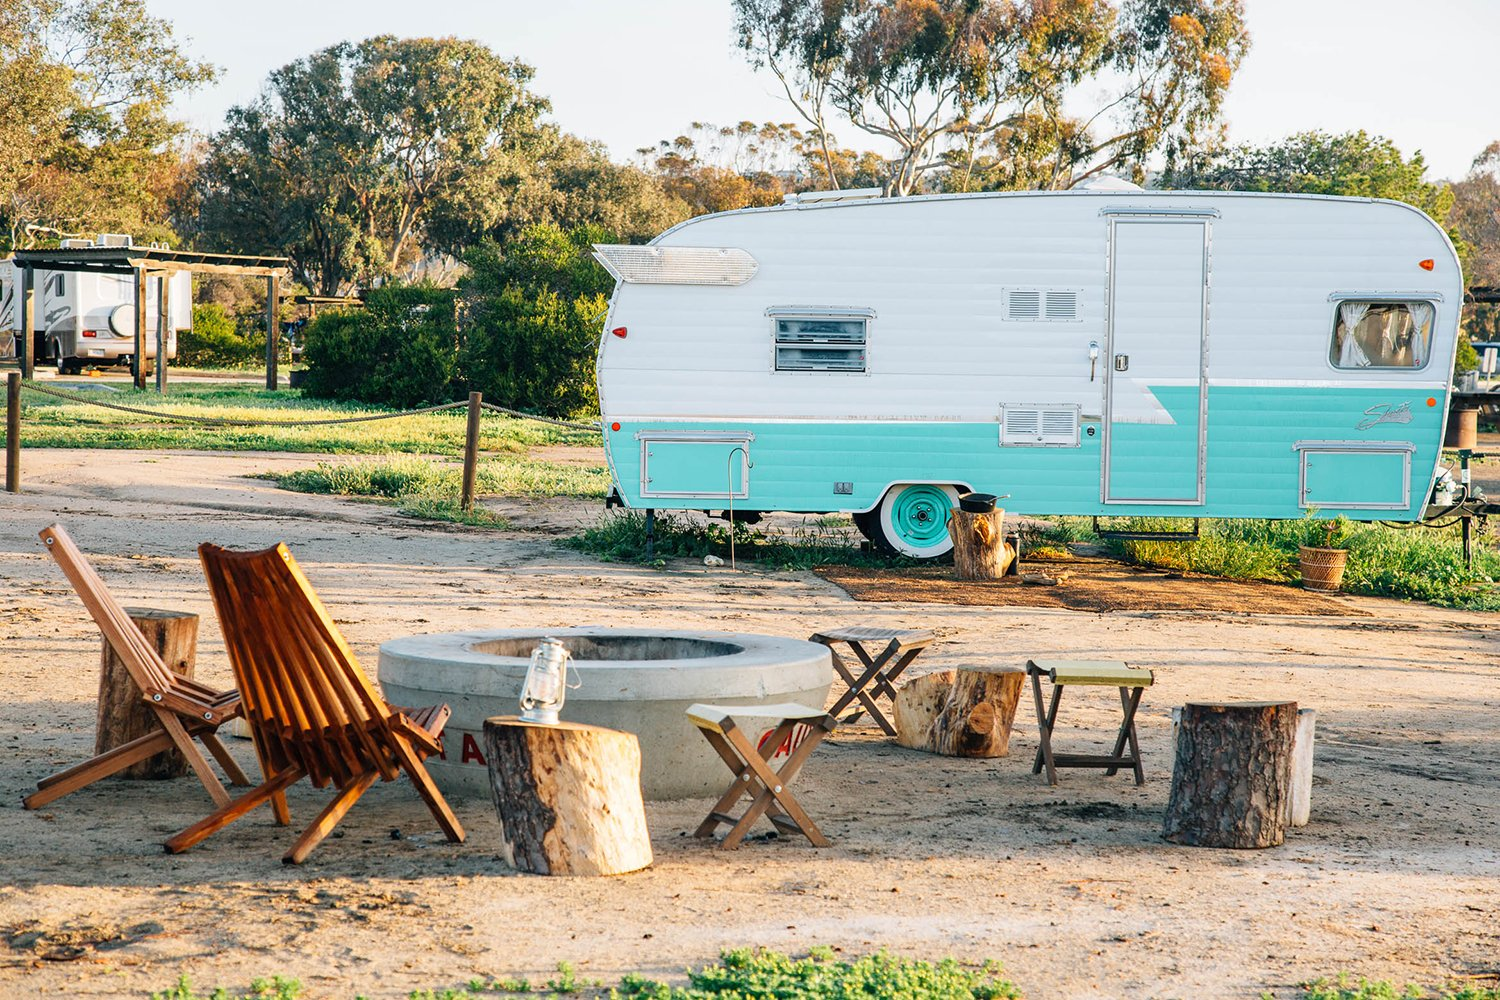 Photo 7 of 11 in The Holidays: A Retro Camp Community On Southern California's Scenic Coastline